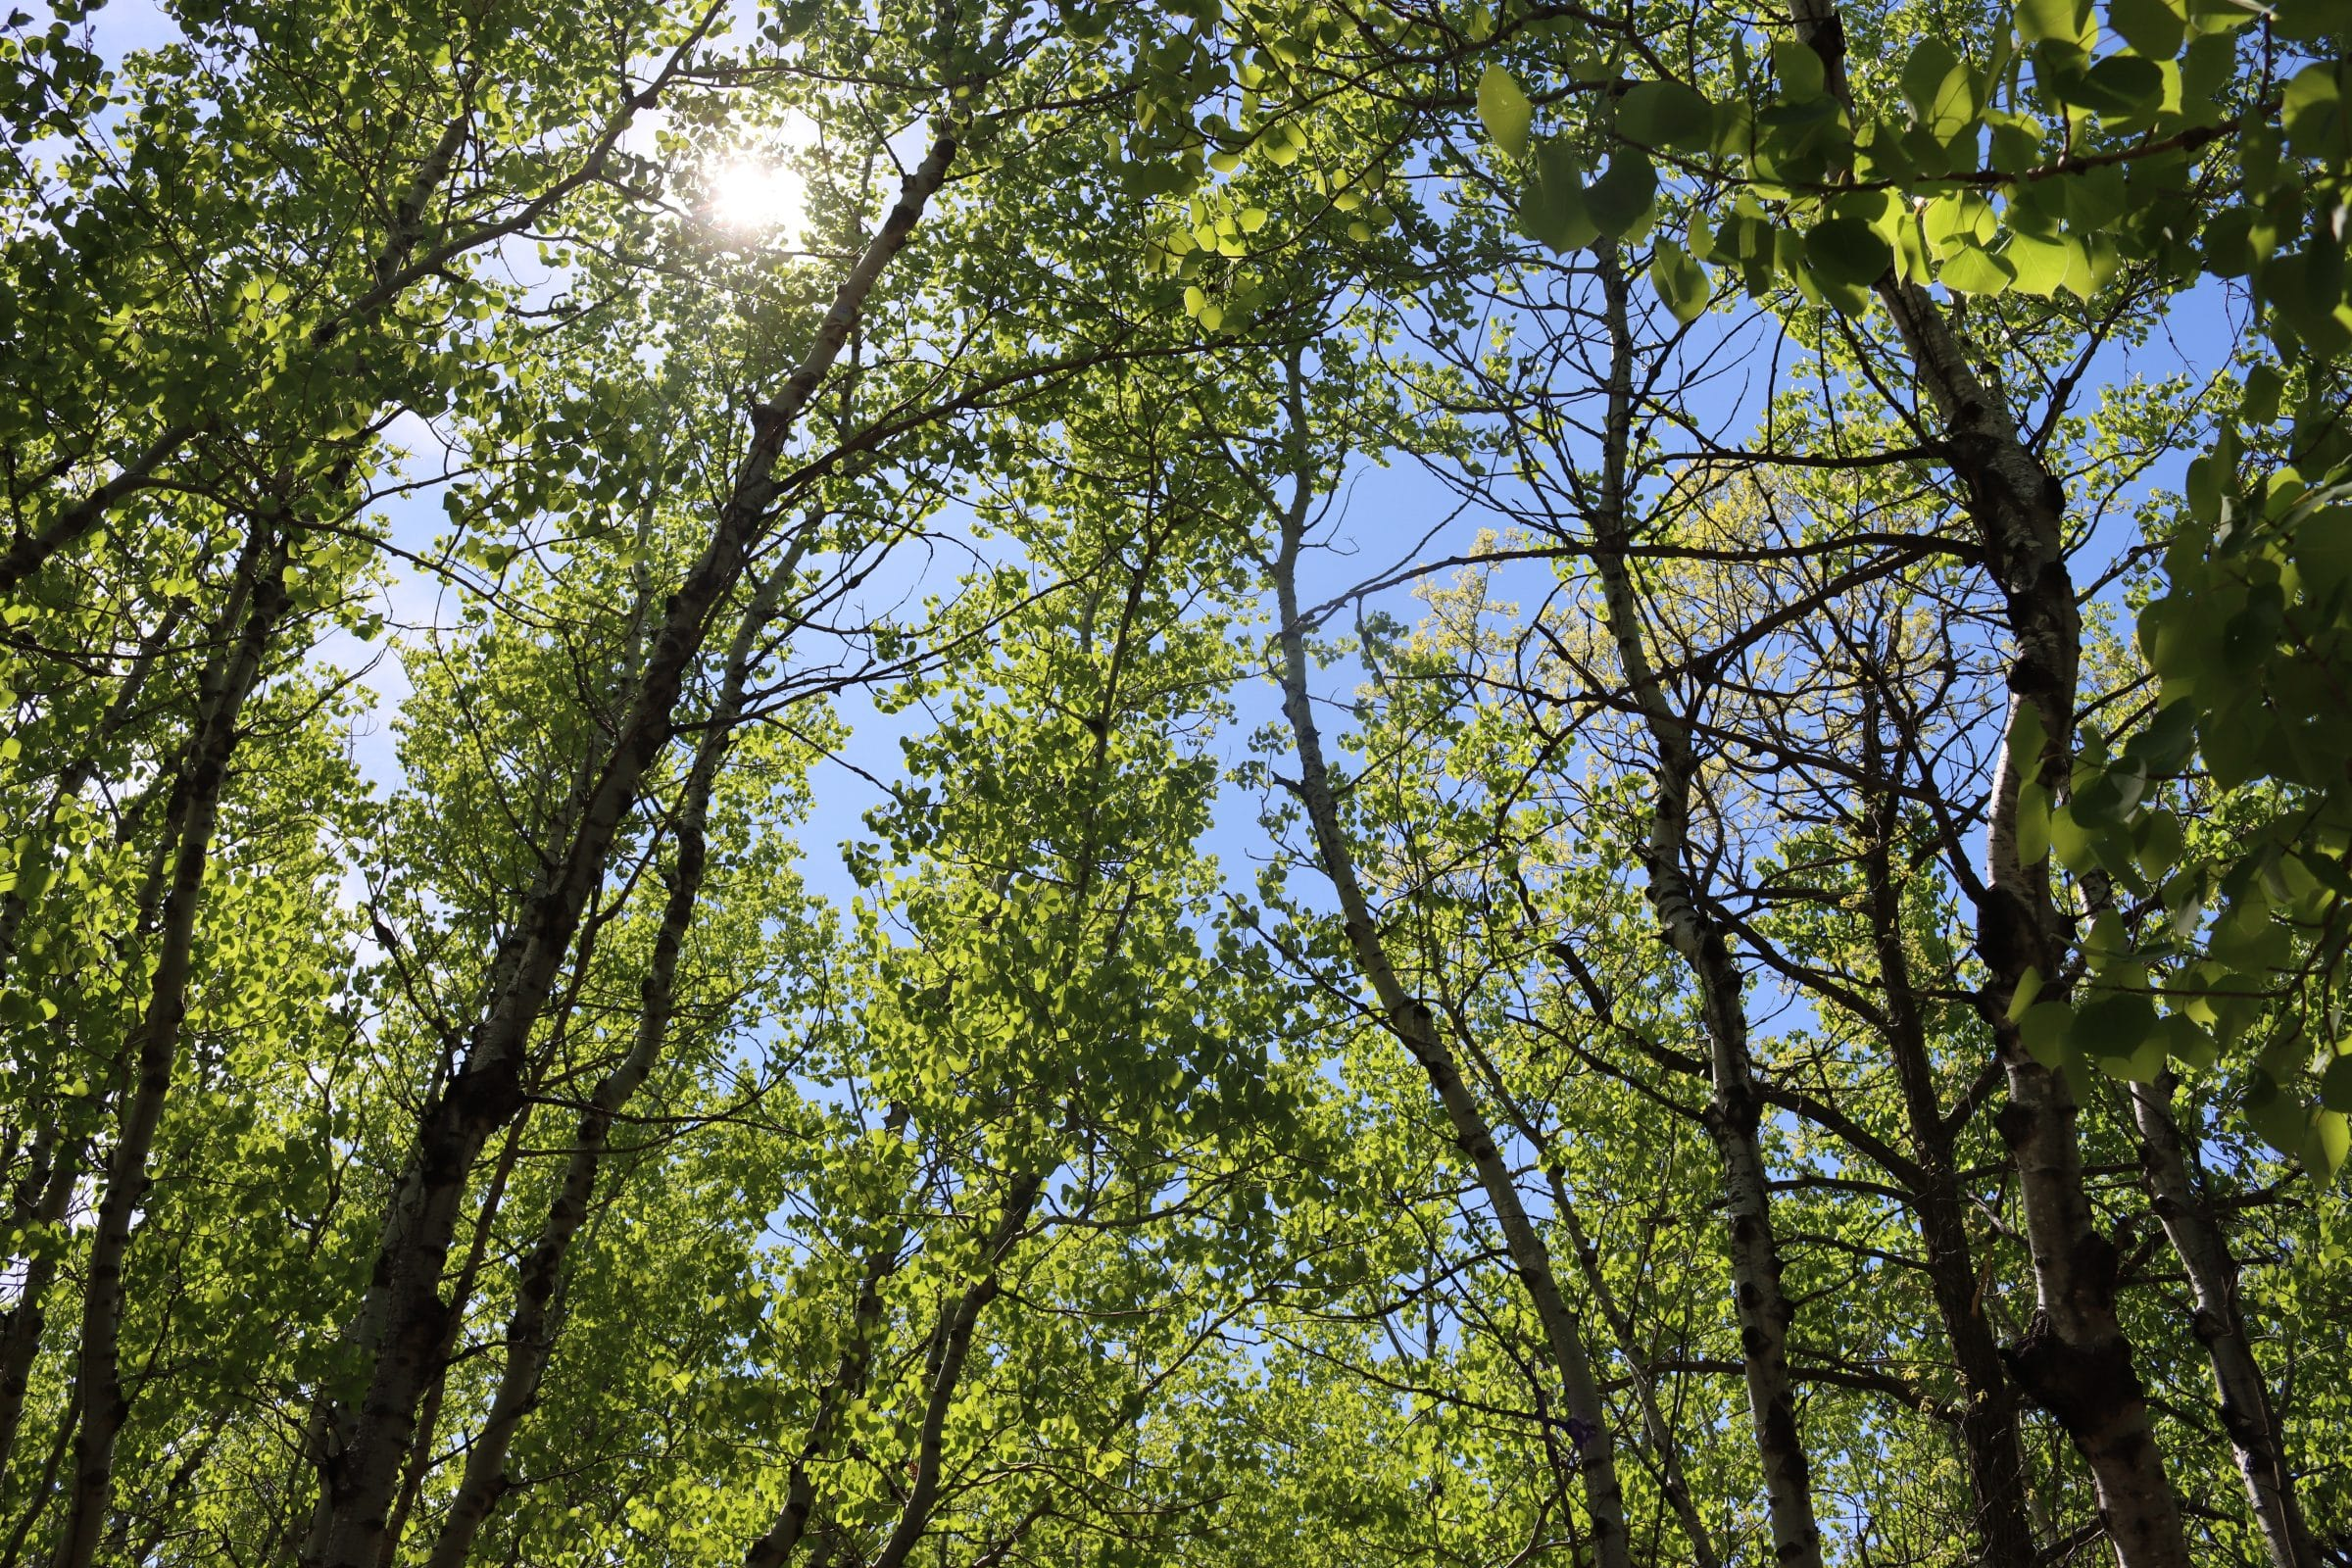 A blue sky and sunshine peeks through leafy green trees in a forest.